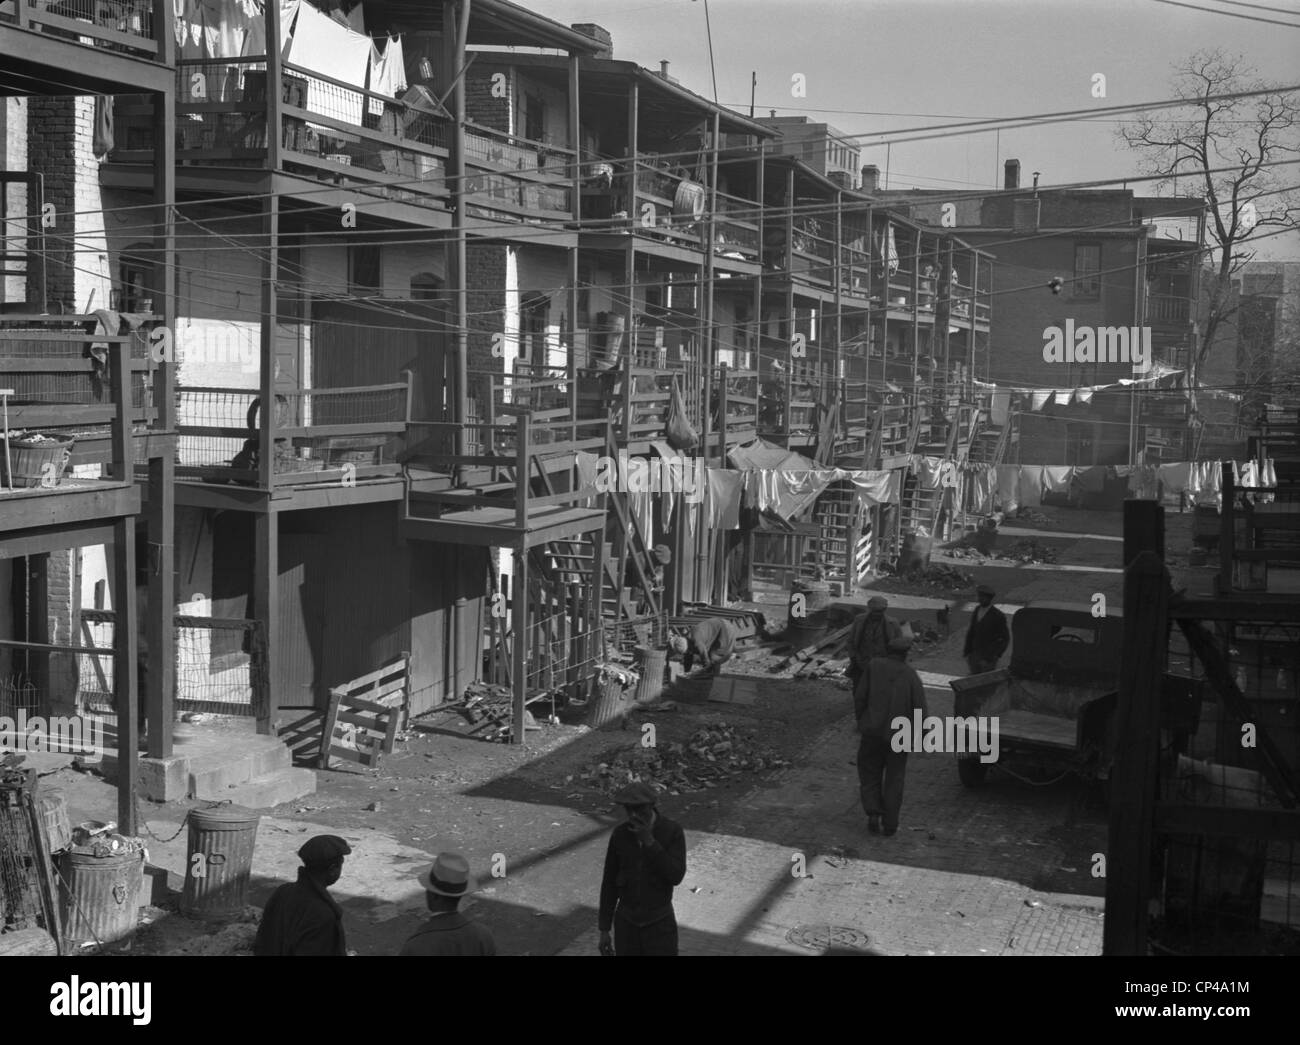 Depression era slums in Washington D.C. African American men in the backyards of three story row houses. Nov. 1935. - Stock Image